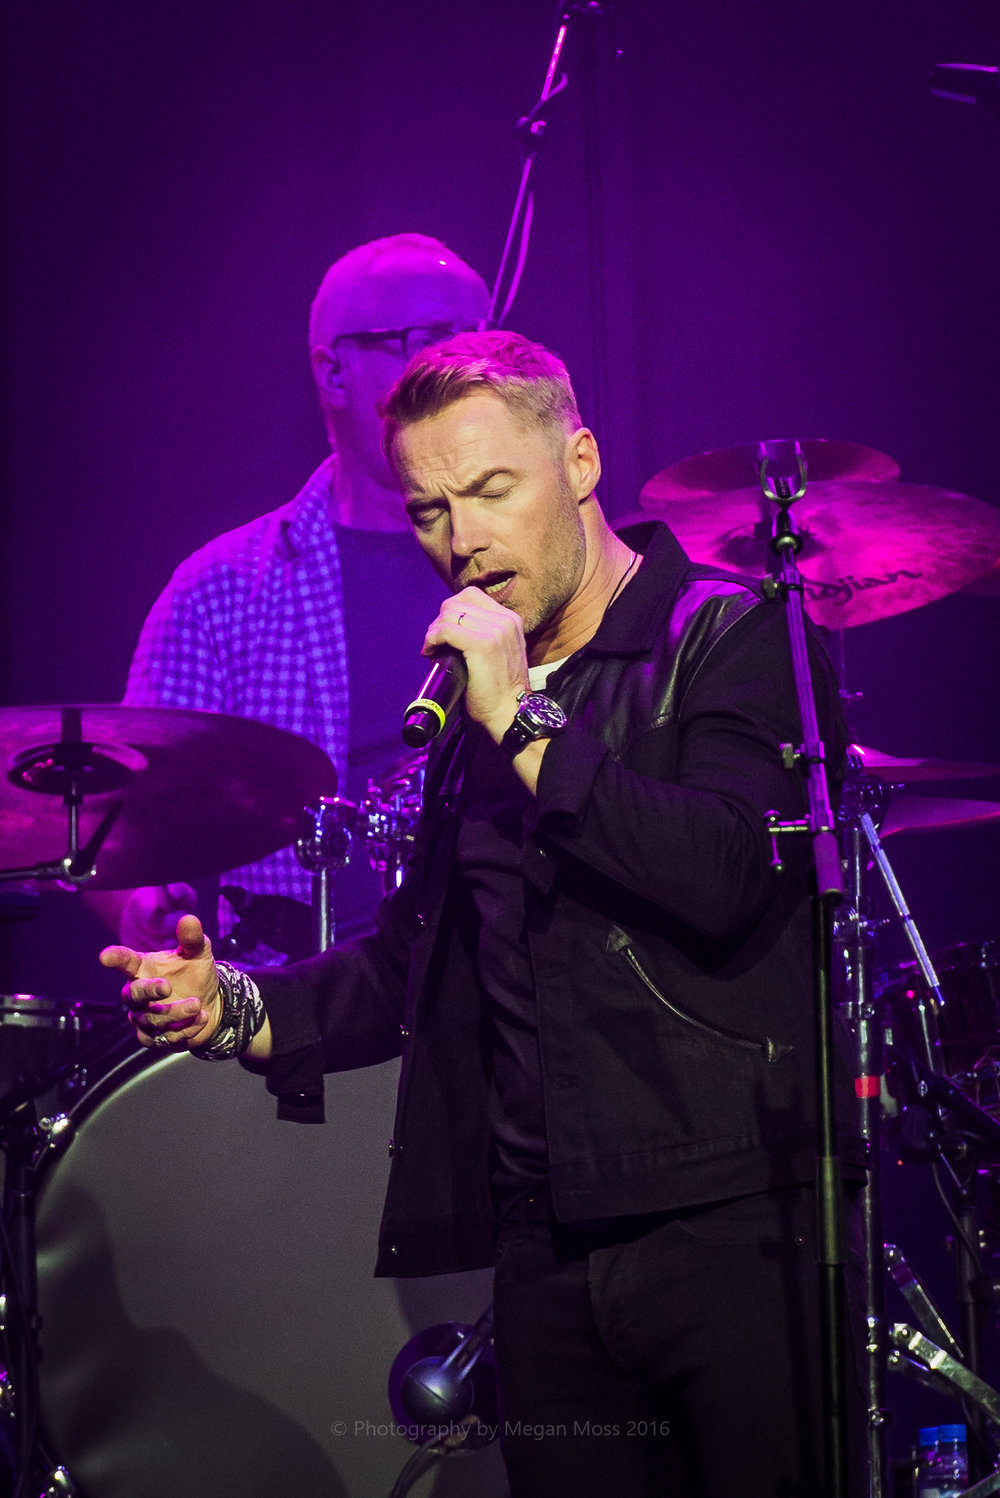 Ronan Keating 4 Nov 16 (18 of 18).jpg